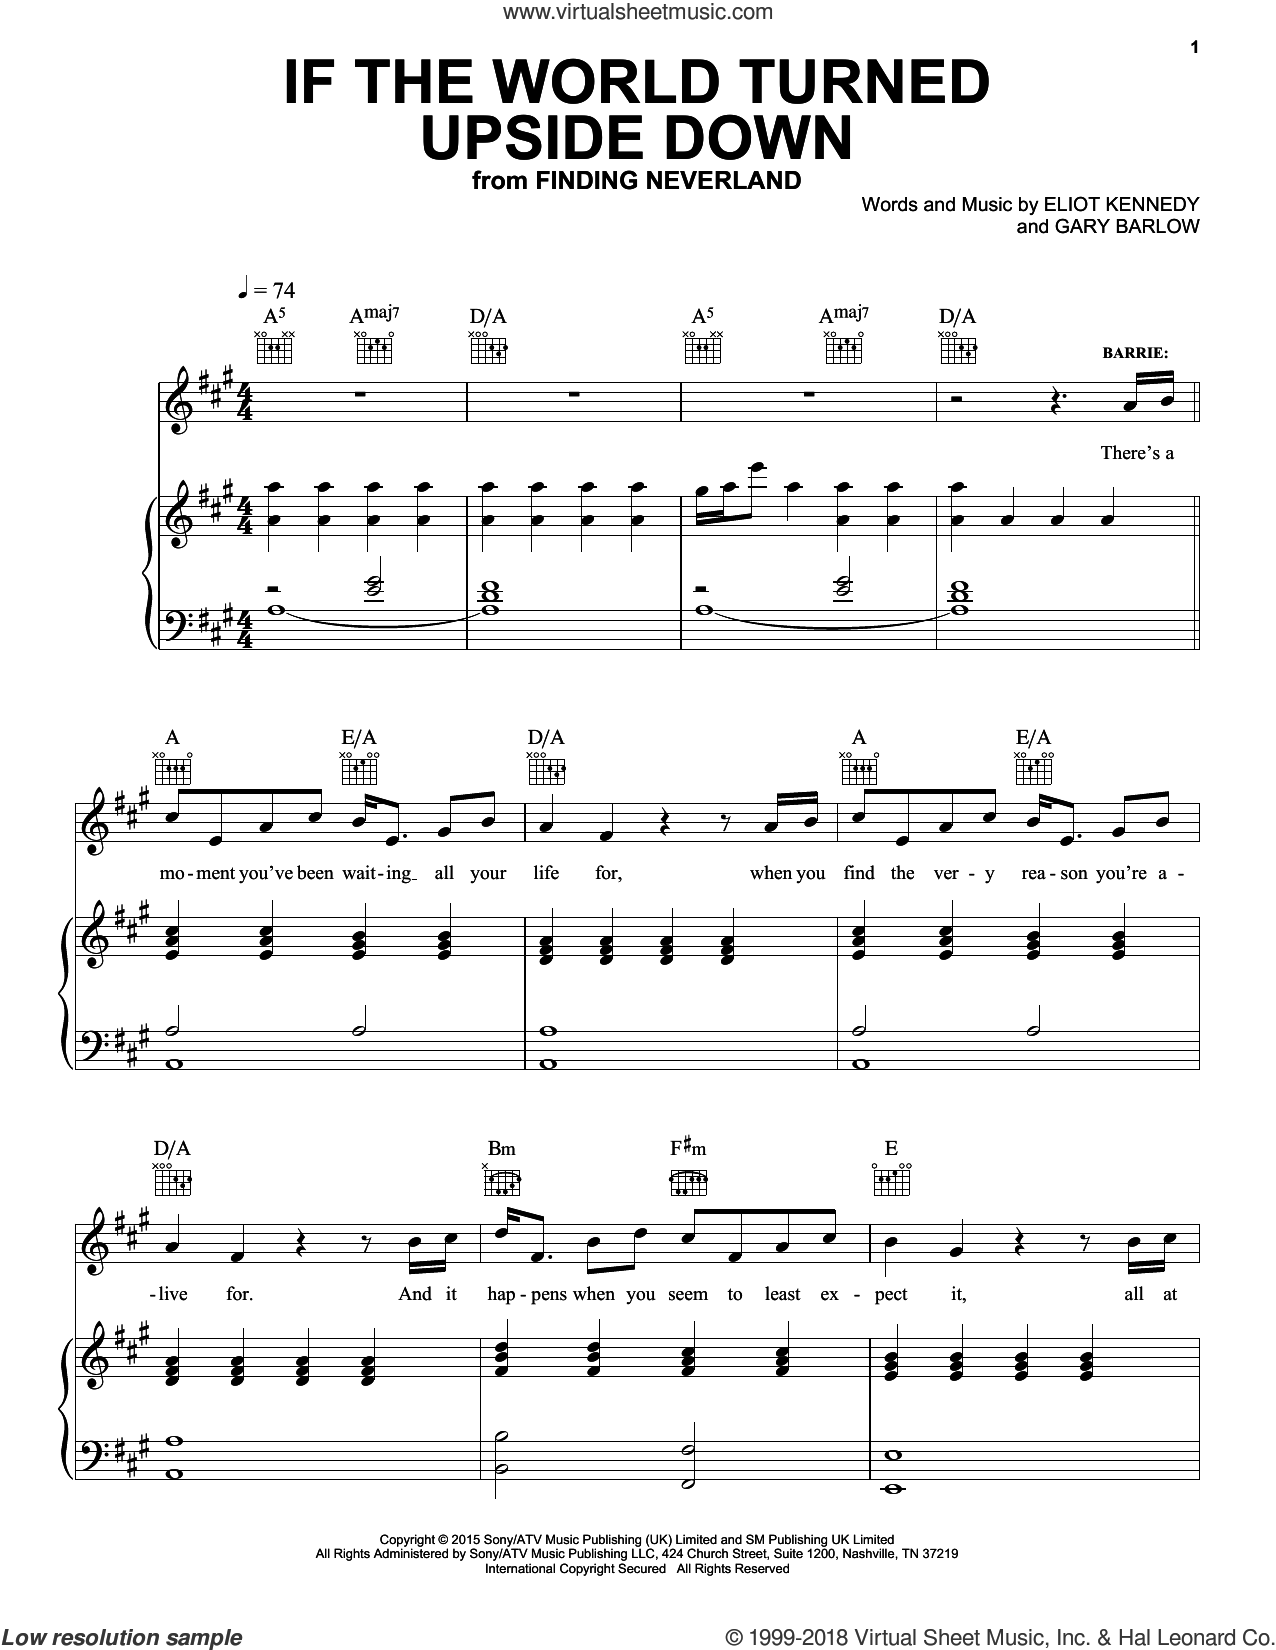 If The World Turned Upside Down sheet music for voice, piano or guitar by Gary Barlow and Eliot Kennedy, intermediate skill level